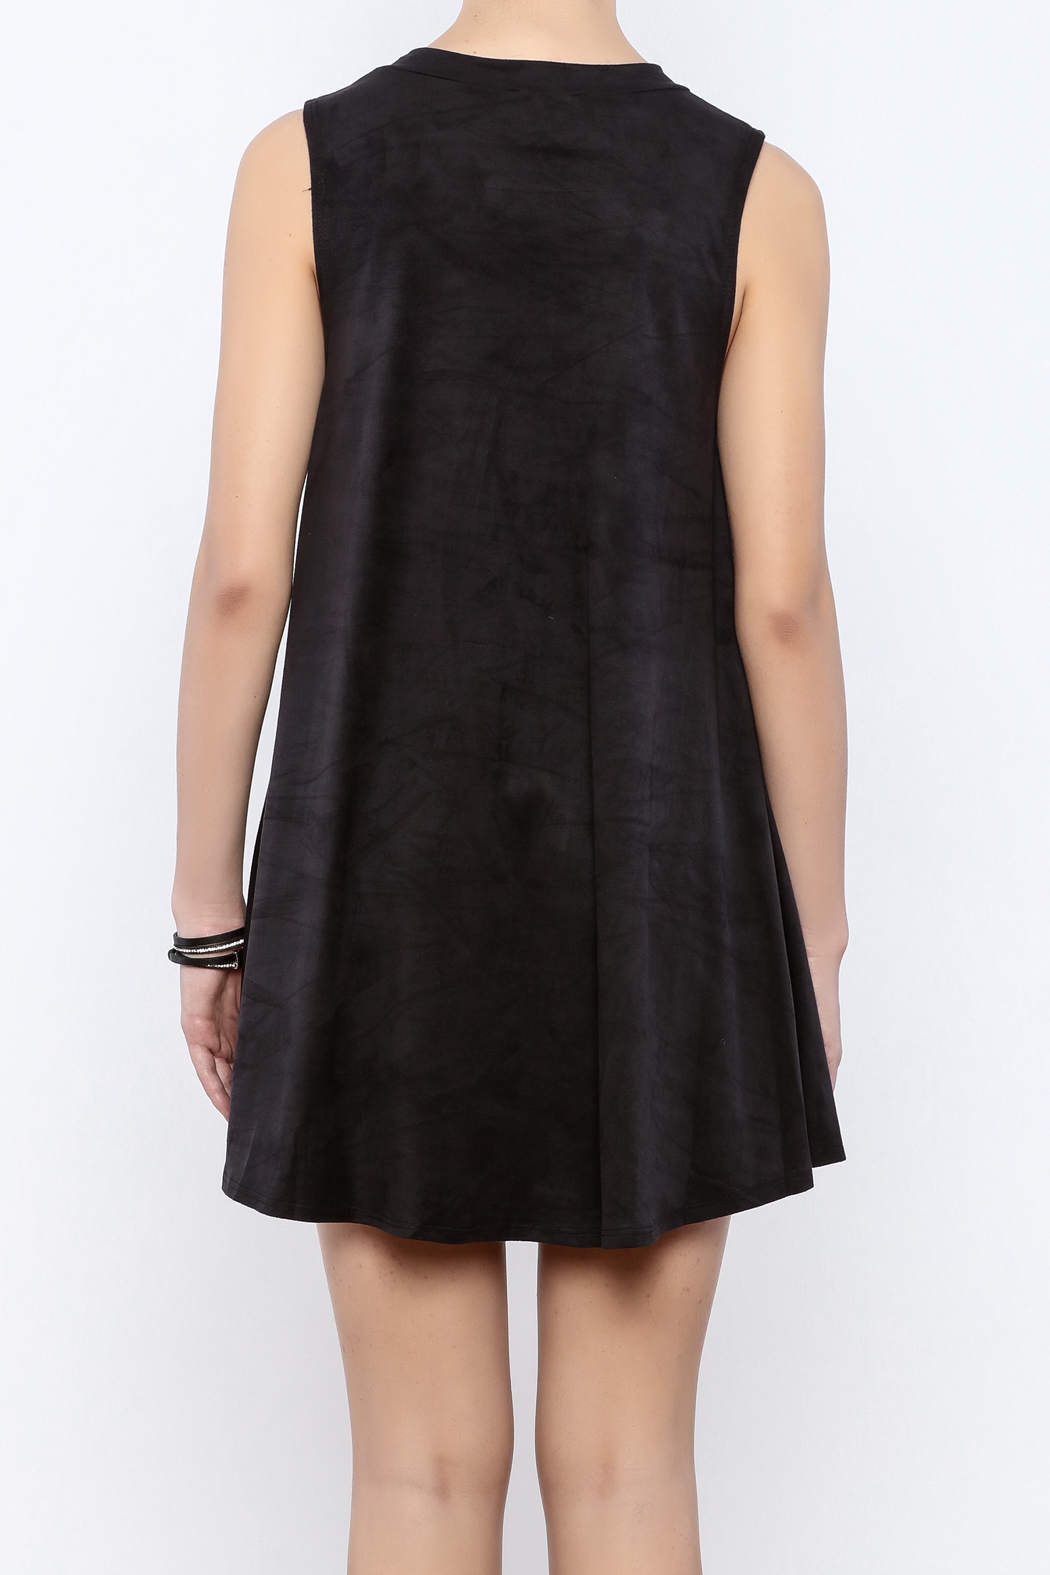 Coveted Clothing Faux Suede Tank Dress - Back Cropped Image